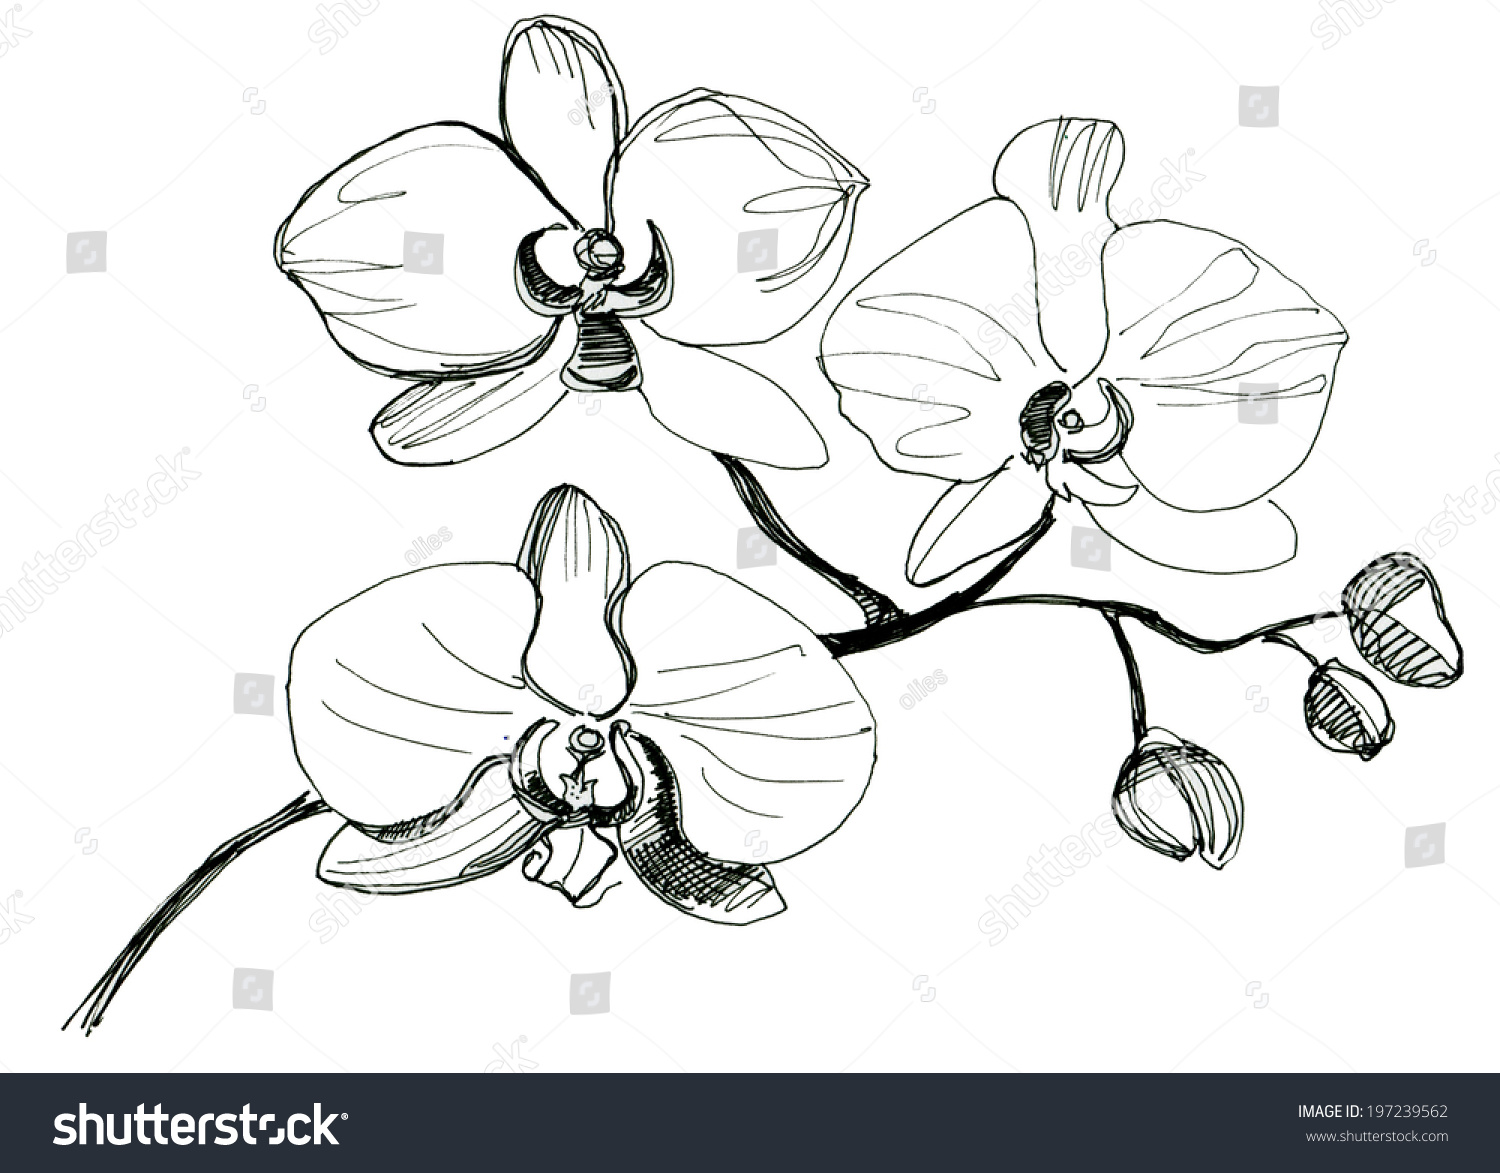 Orchid Flower Line Drawing : Gousicteco orchid drawing outline images